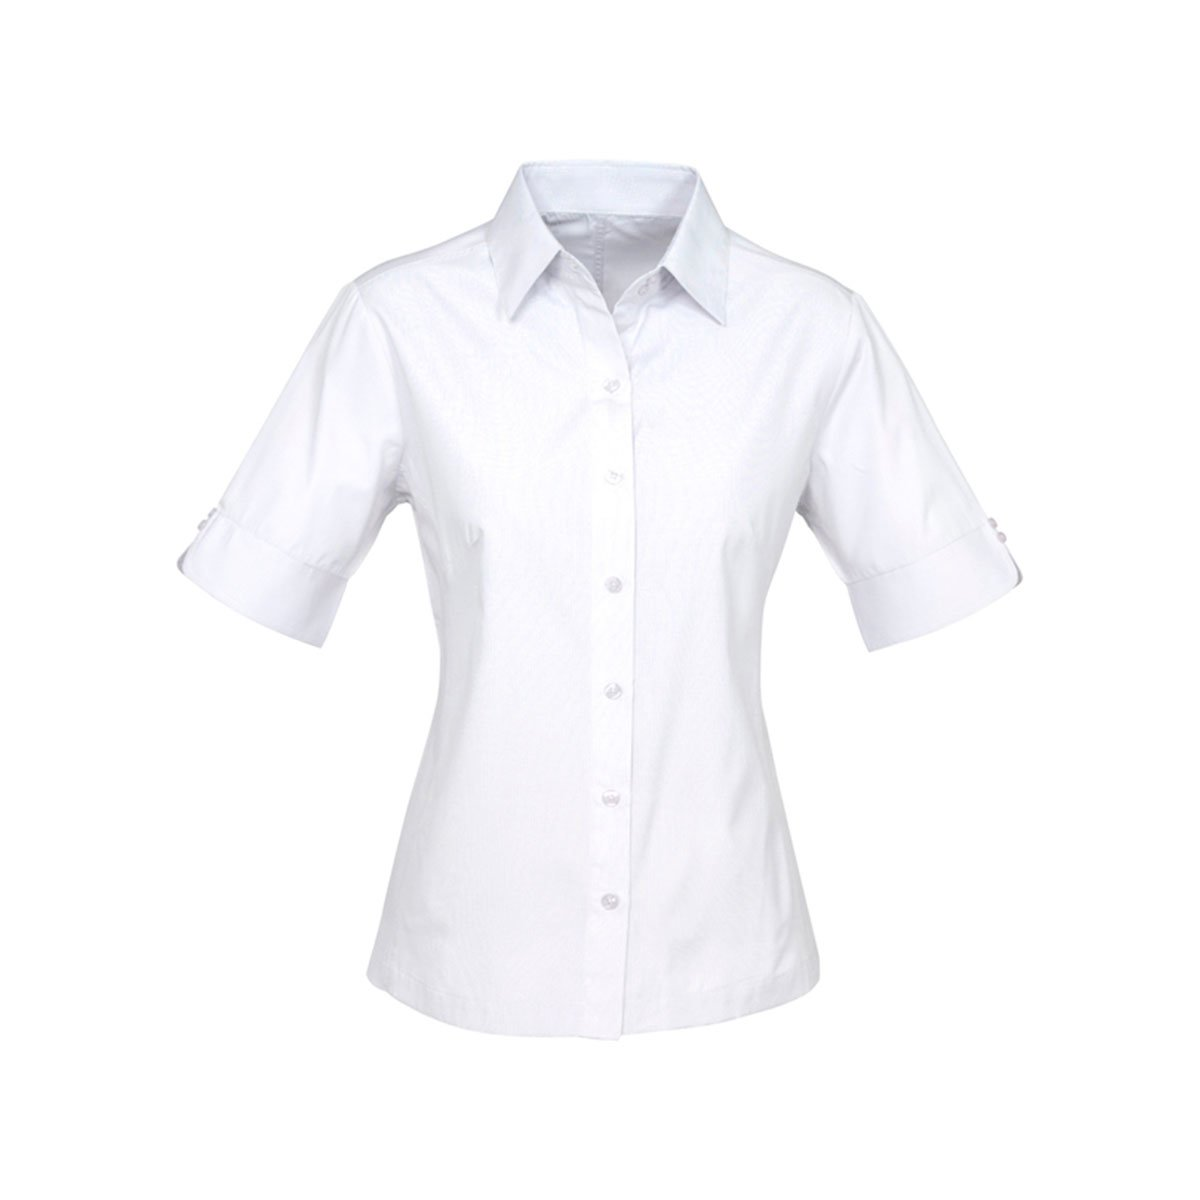 Ladies Ambassador Short Sleeve Shirt-White